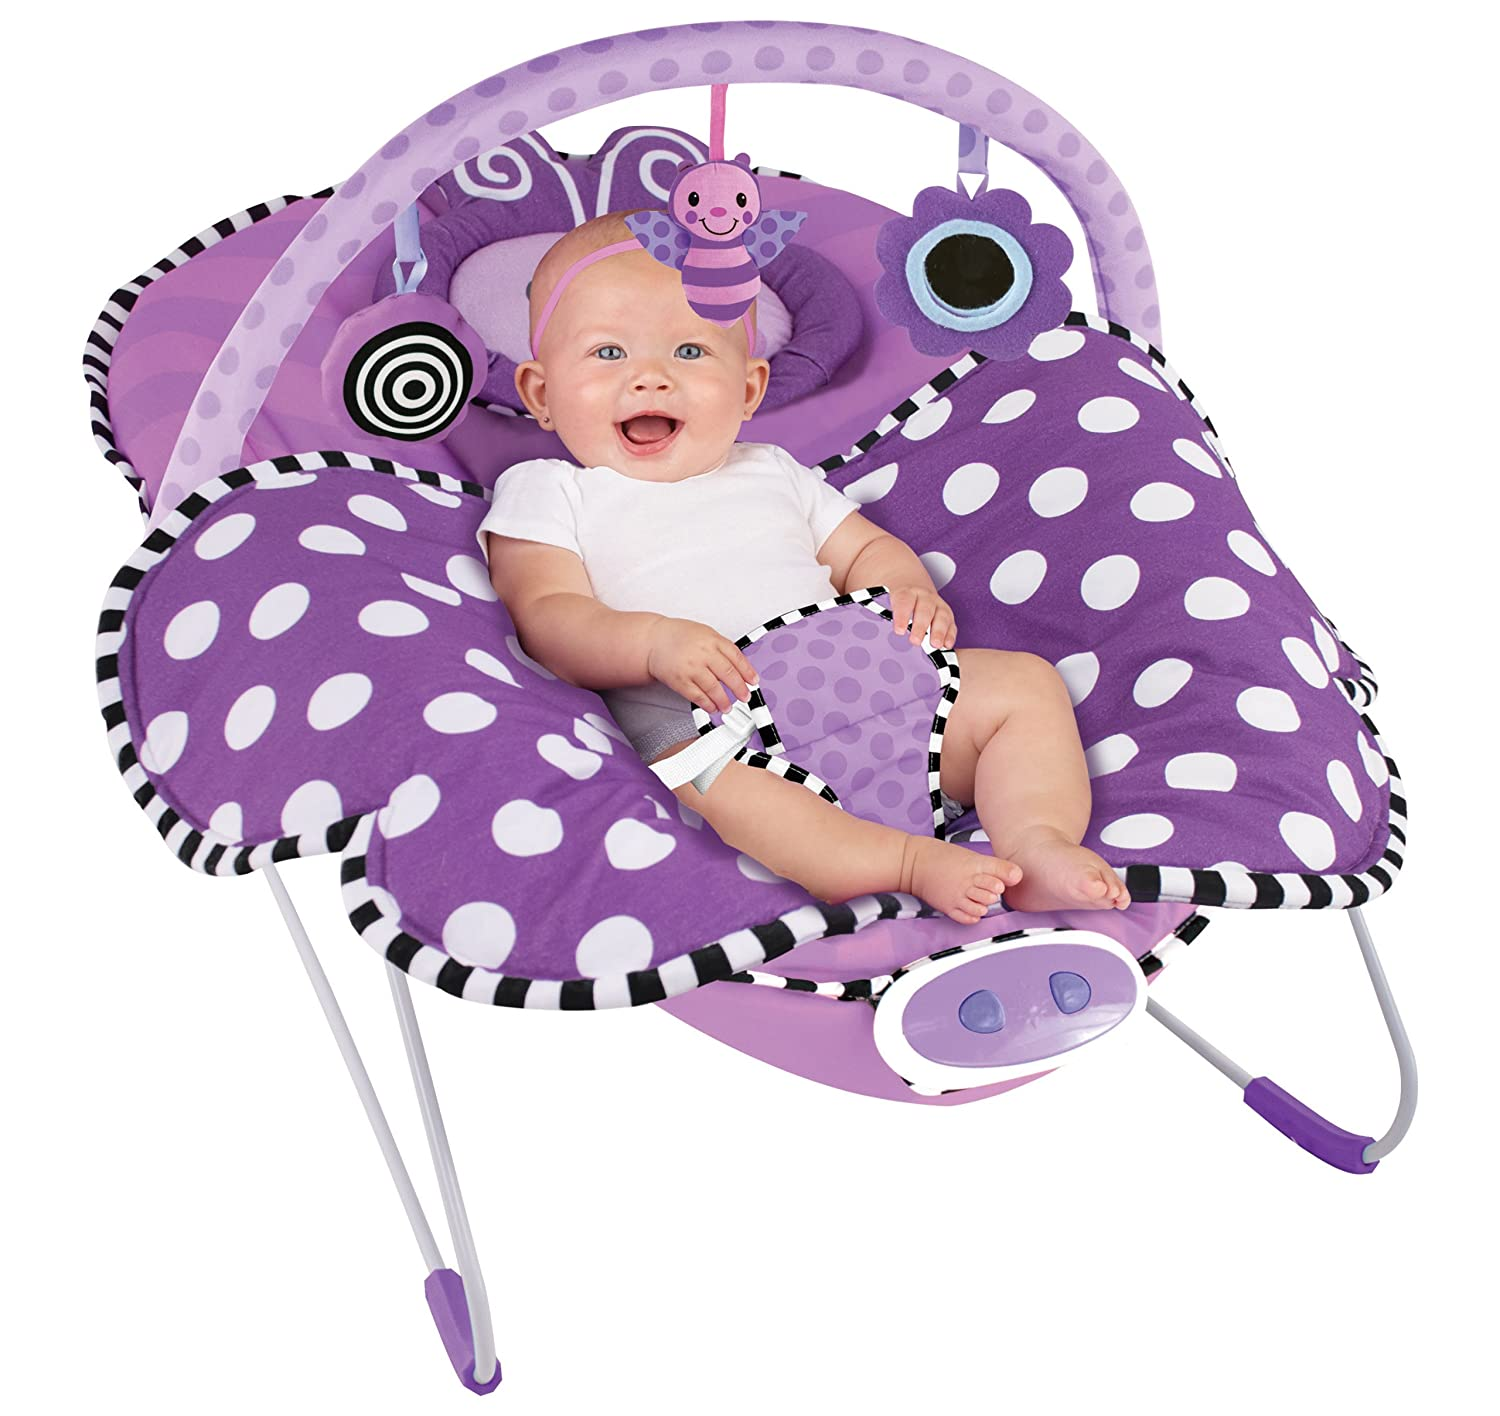 baby bouncy chair age isle of palms beach rentals top 5 and best rockers bouncers